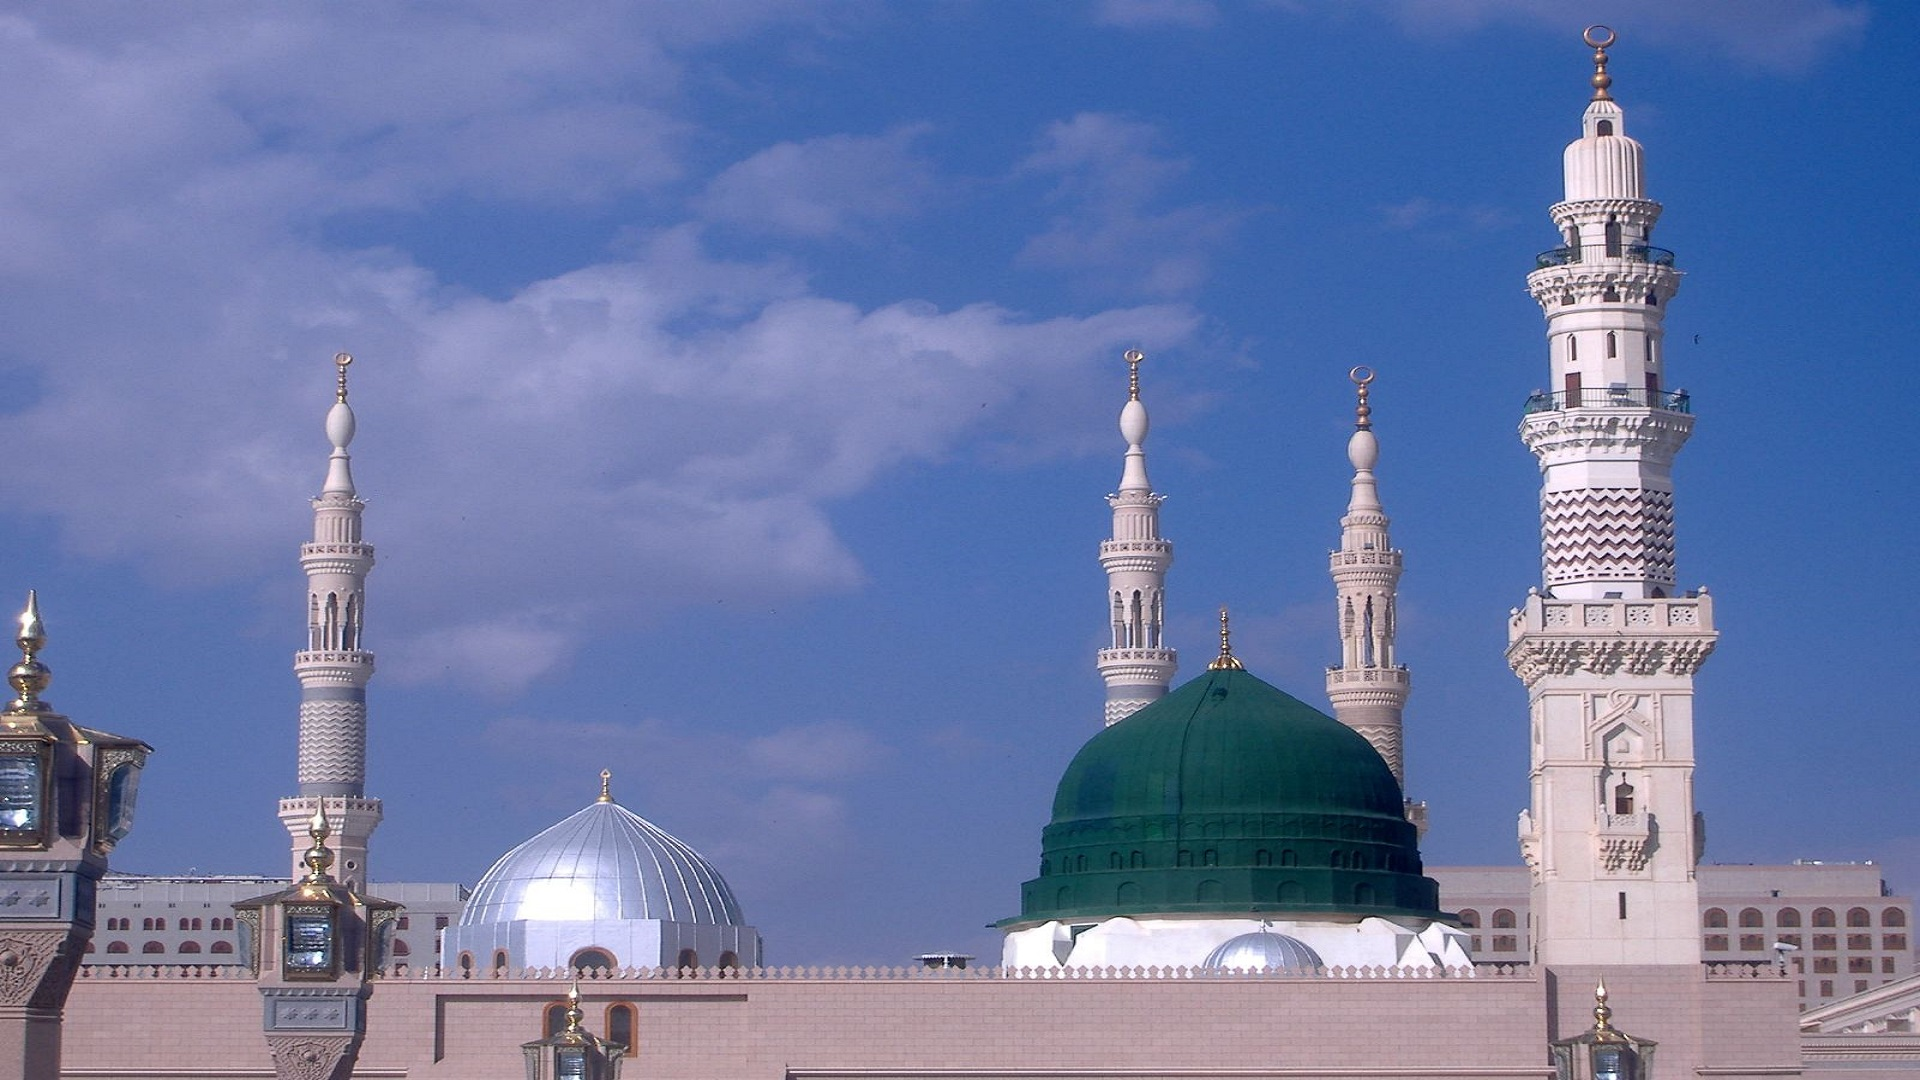 hd free madina shareef top best place wallpapers   hd